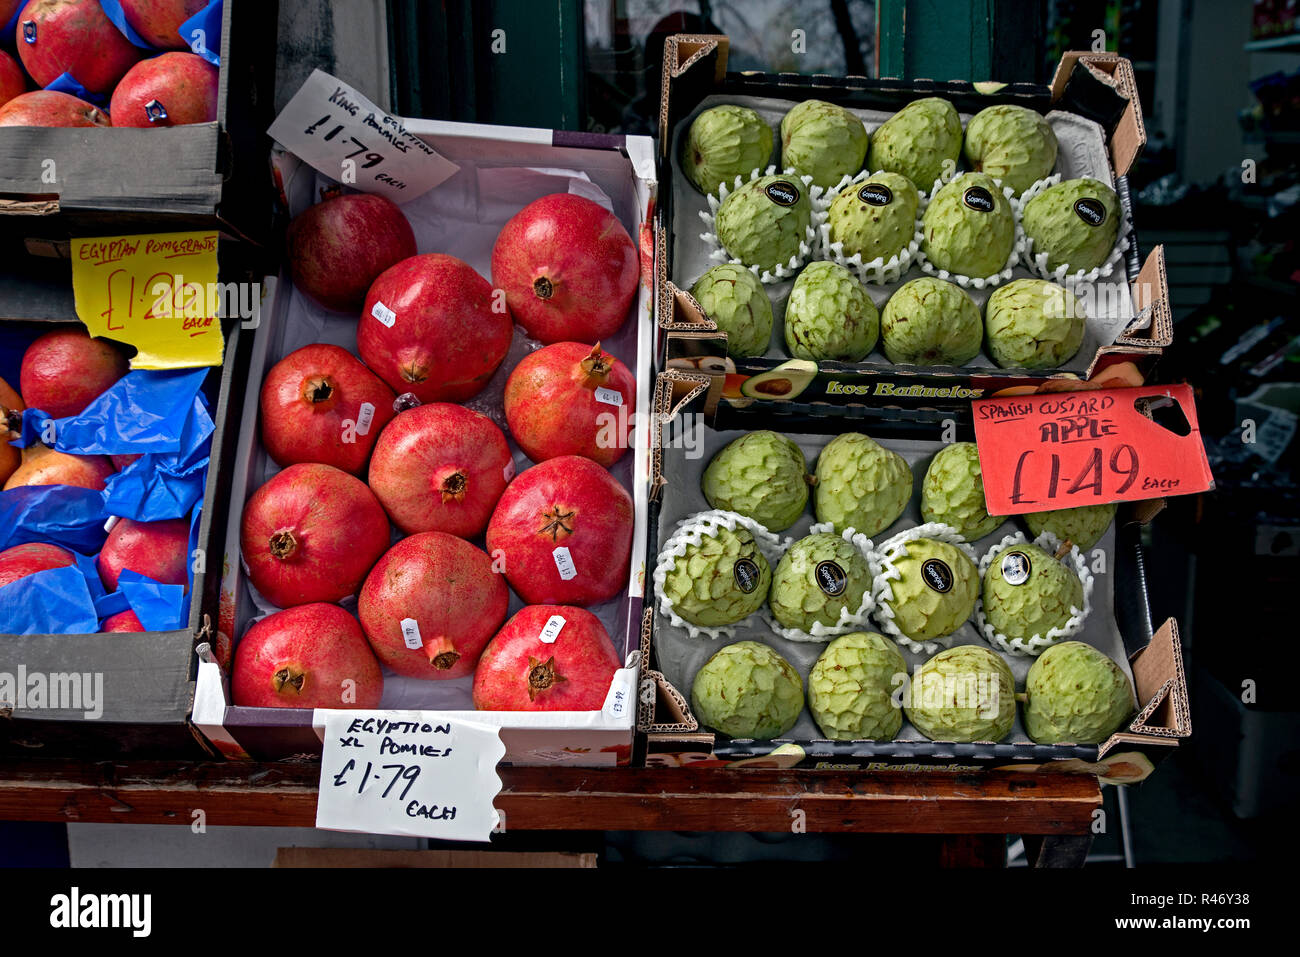 Pomegranates and custard apples on display outside a greengrocer's shop in Tollcross, Edinburgh, Scotland, UK. - Stock Image